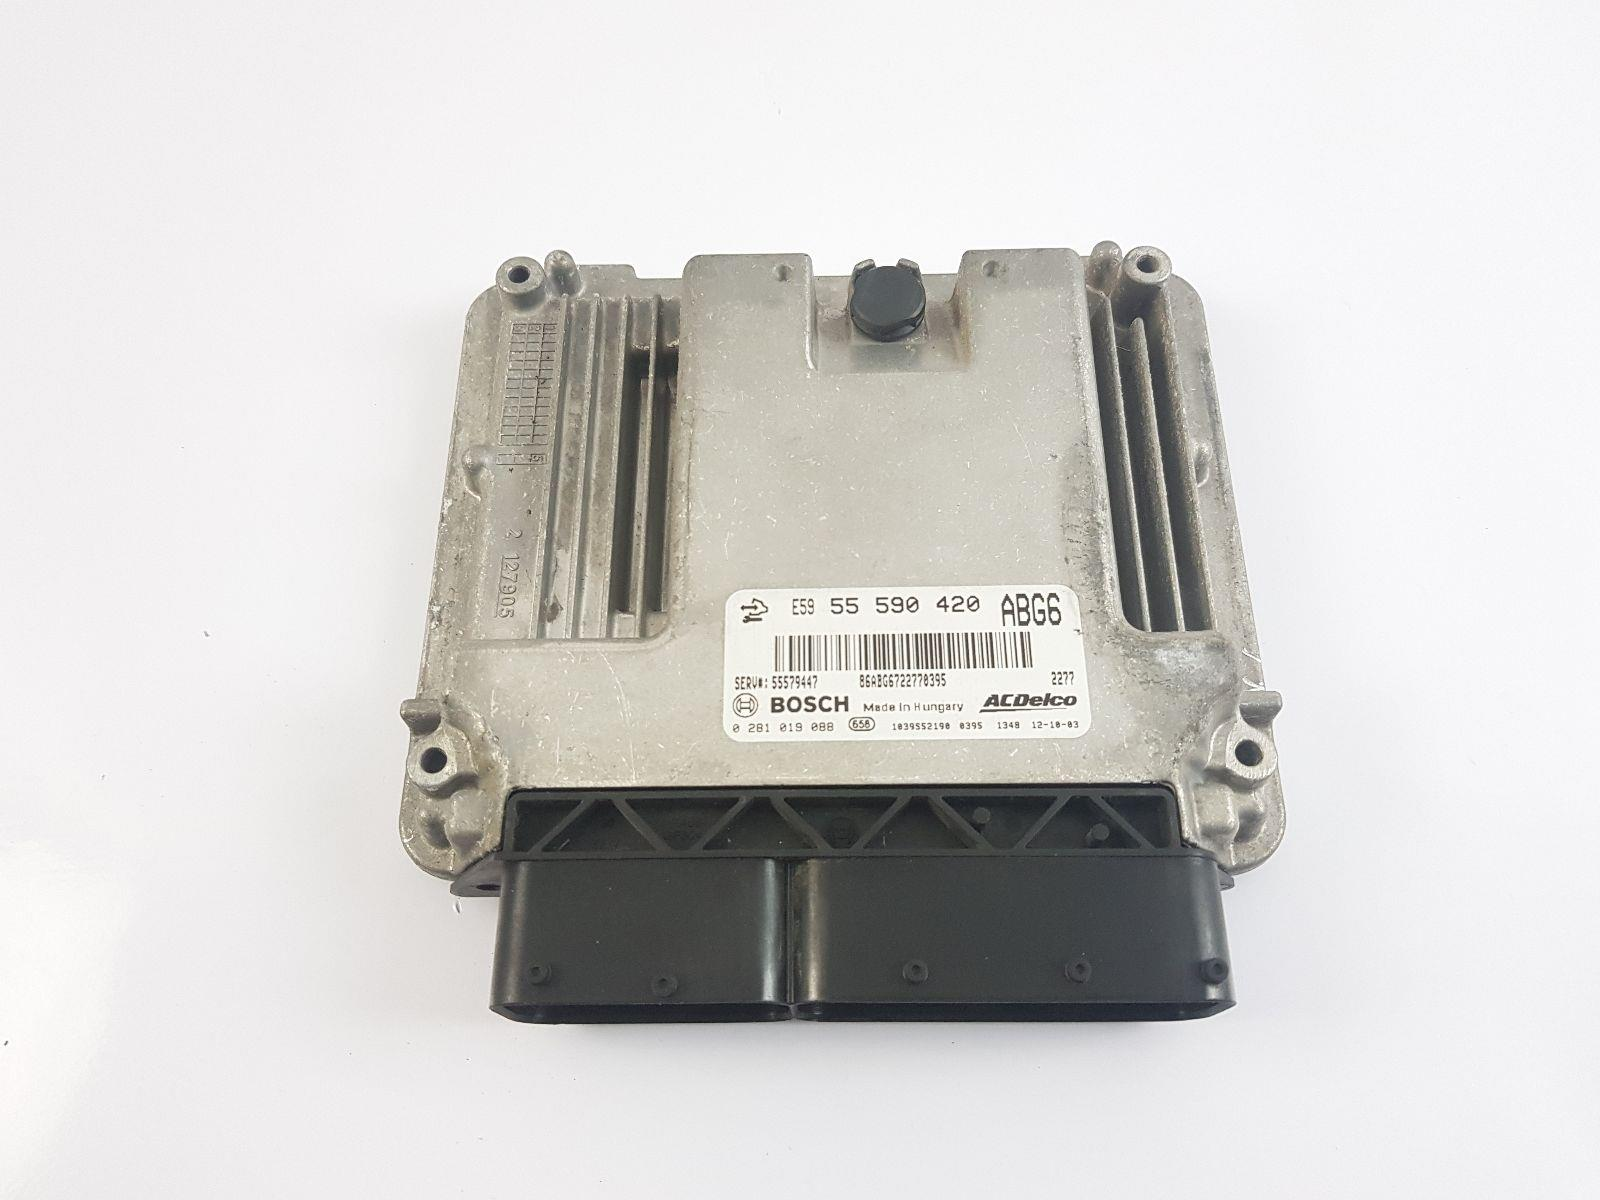 VAUXHALL MK6 (J) (A3400) 2009 TO 2015 ECU Engine